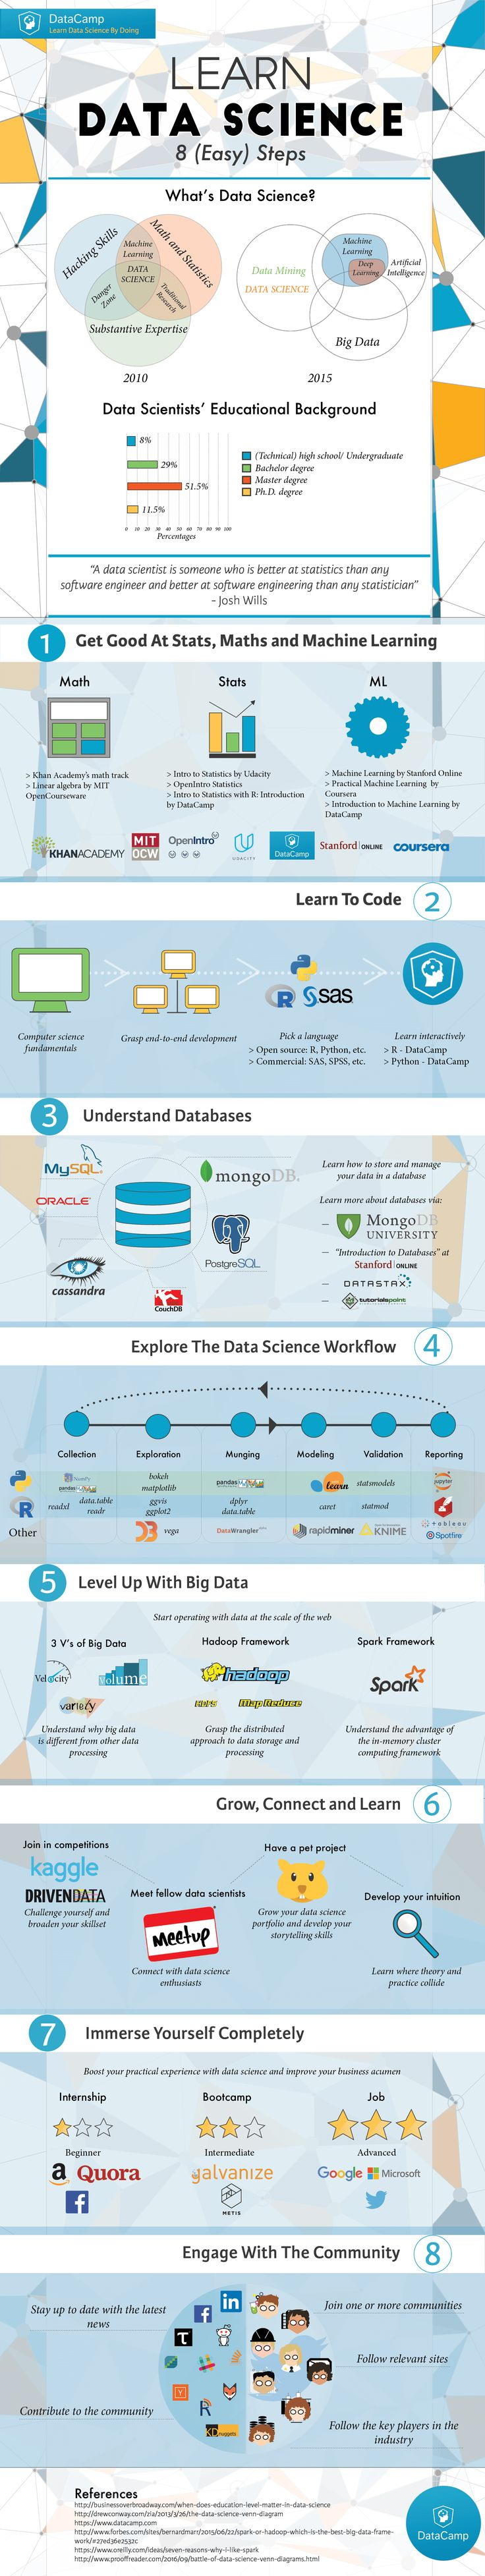 Infographic with 8 easy steps to learn data science